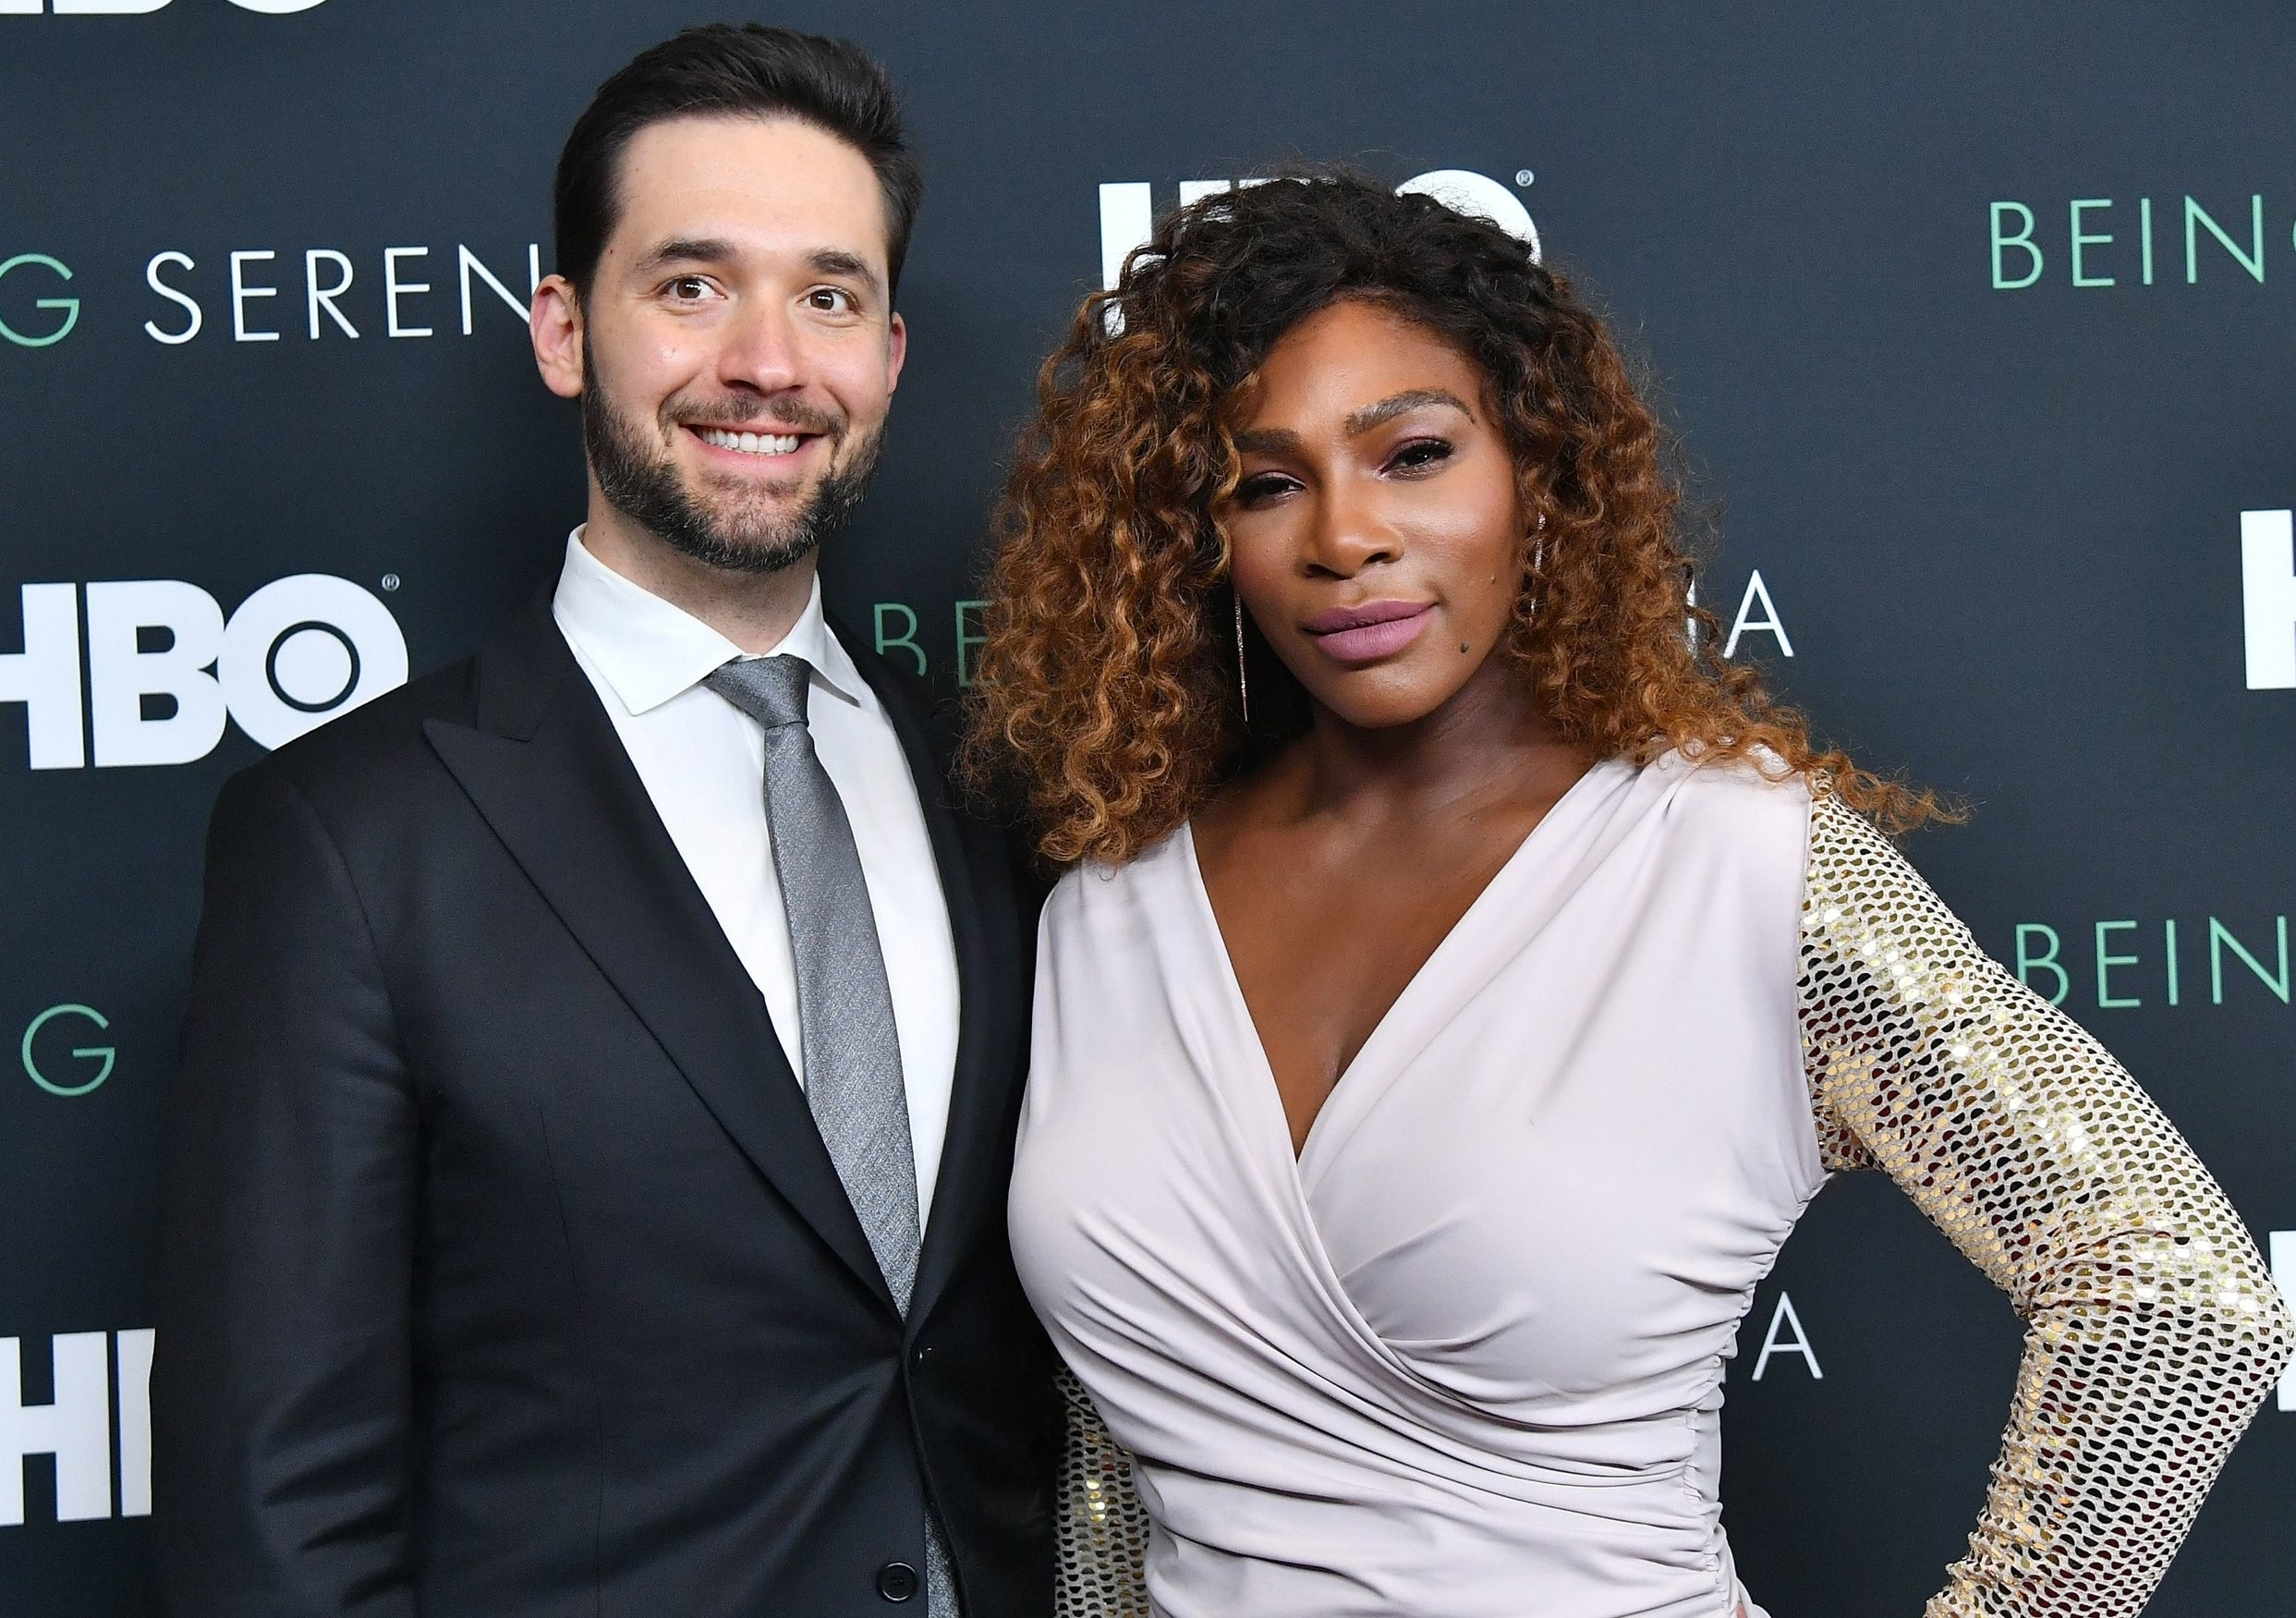 Serena poses with Alexis at another red carpet event